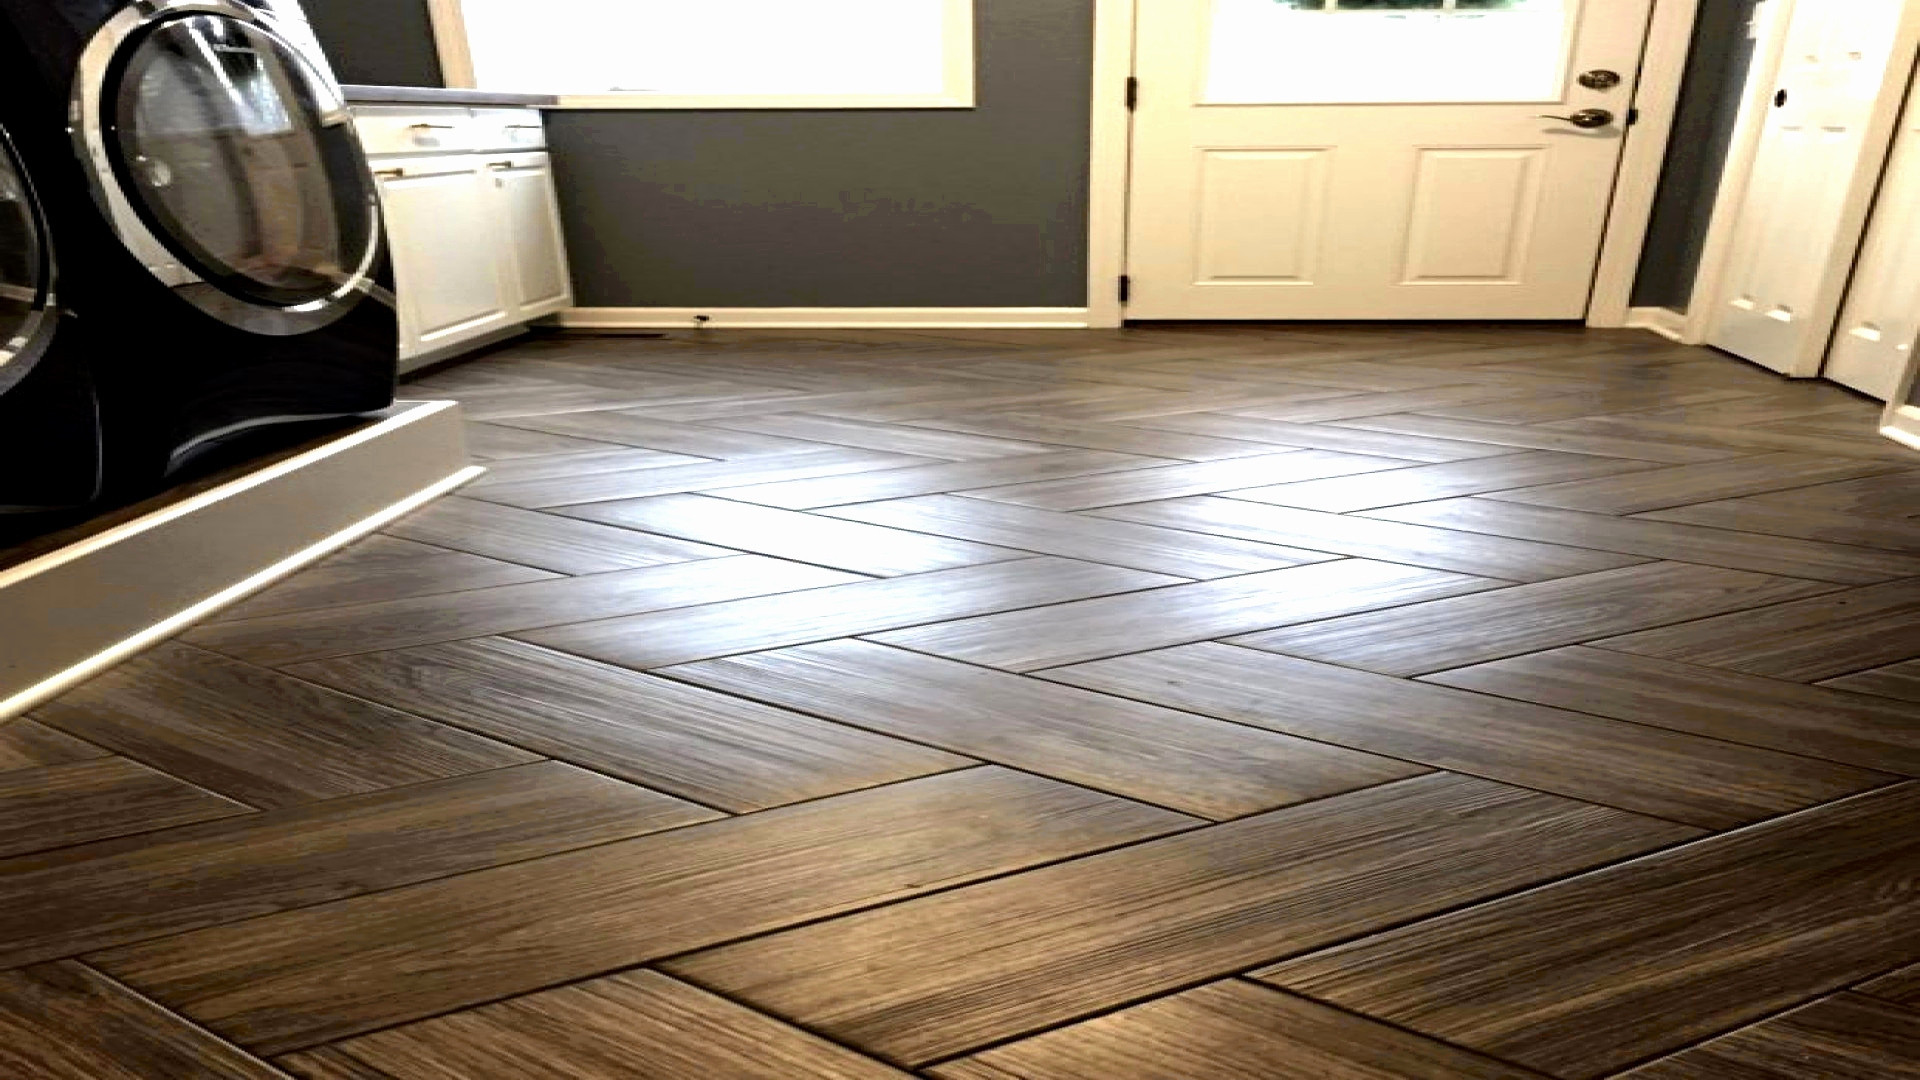 hardwood floor cost per square meter of wooden flooring price warren oak laminate flooring pinterest floor in wooden flooring price 4305 laminate flooring cost 50 luxury vinyl flooring cost per sq ft